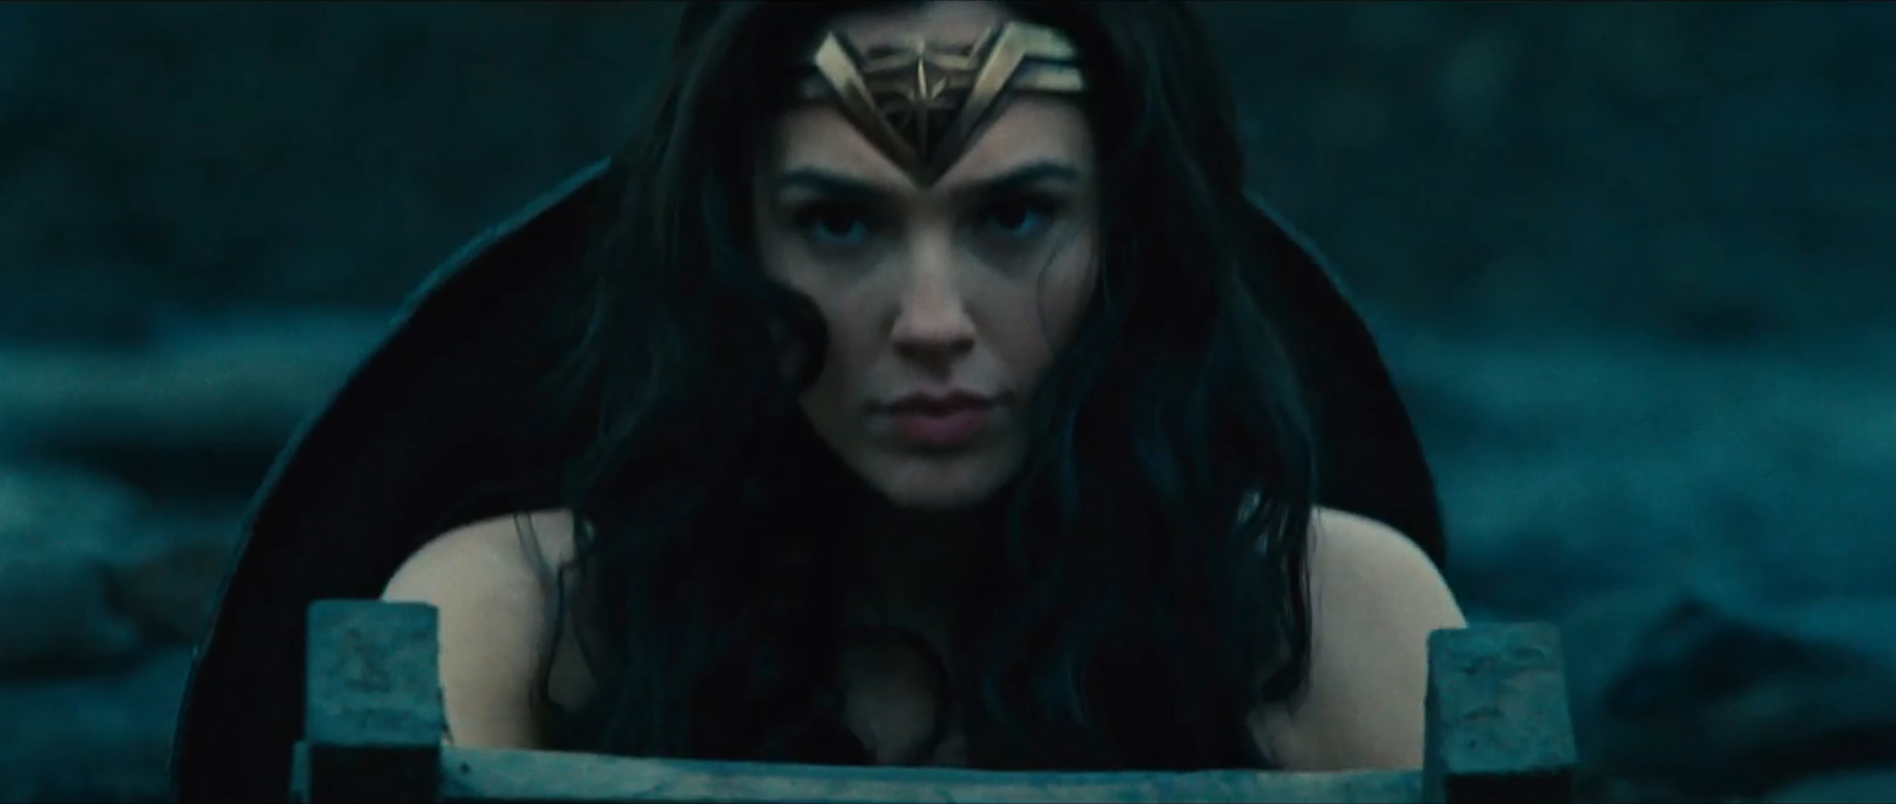 A Wonder Woman on the battlefield and at the box office